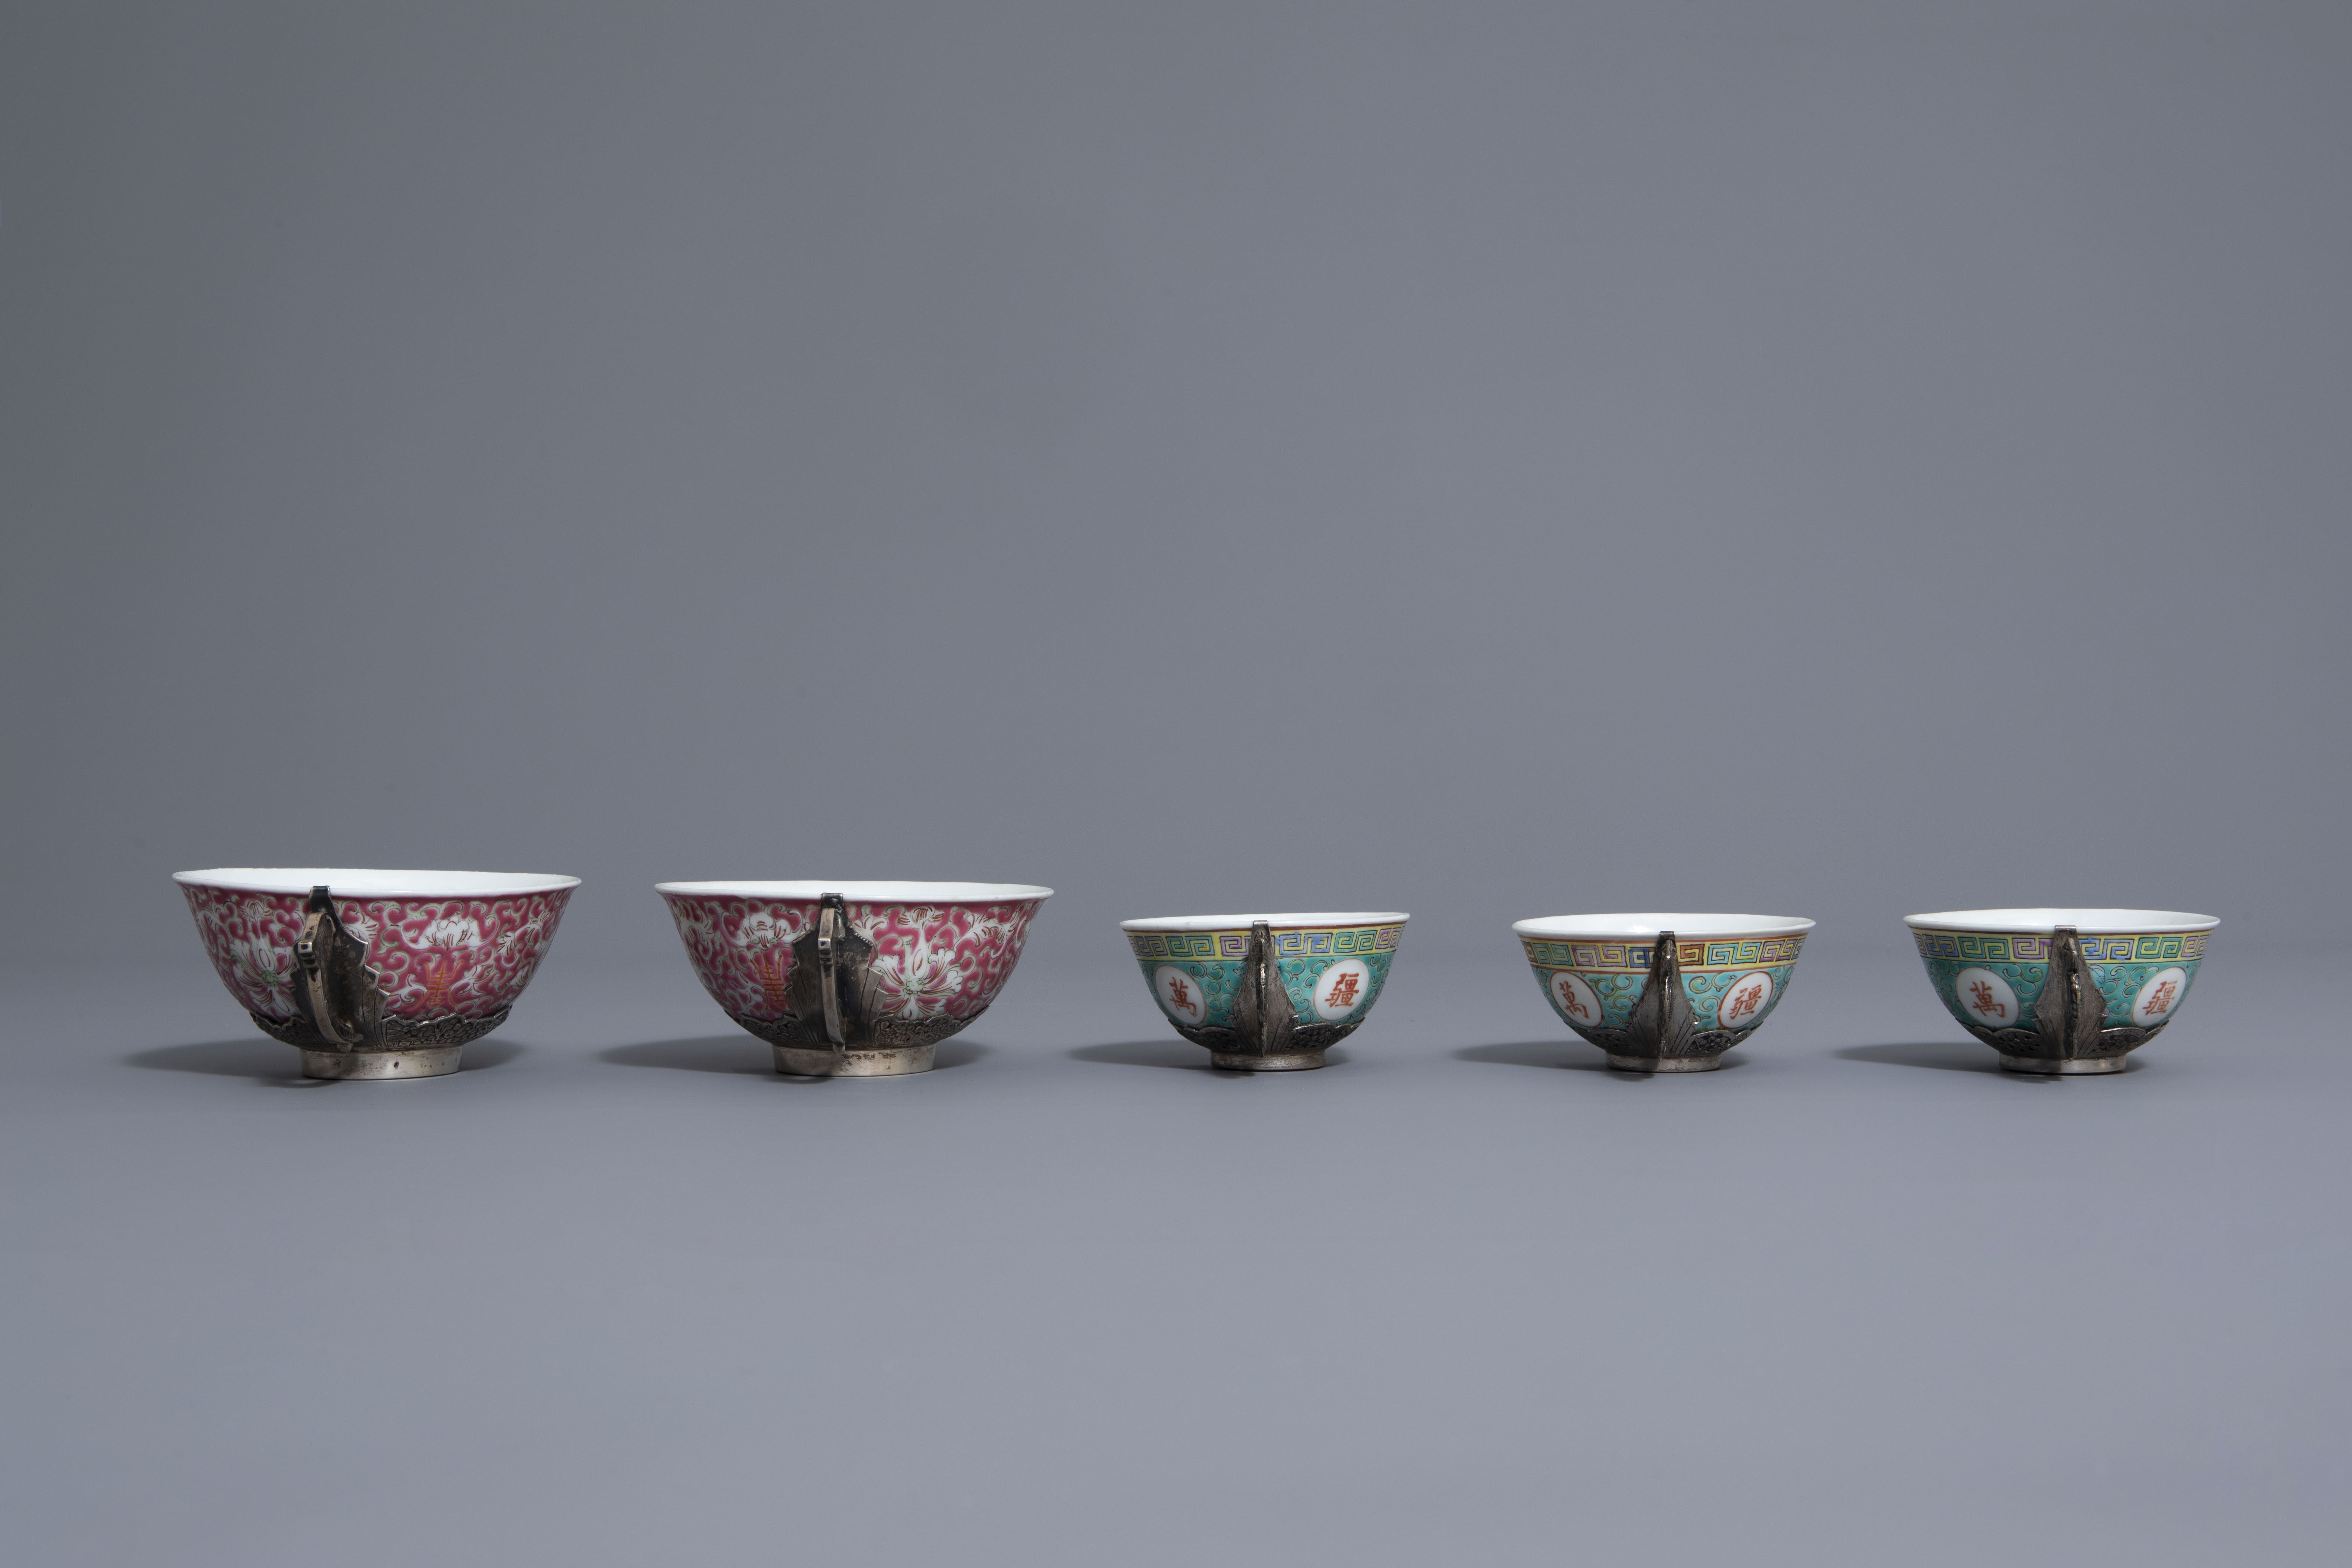 Five Chinese famille rose and silver cups and saucers and a bowl, 19th/20th C. - Image 5 of 17